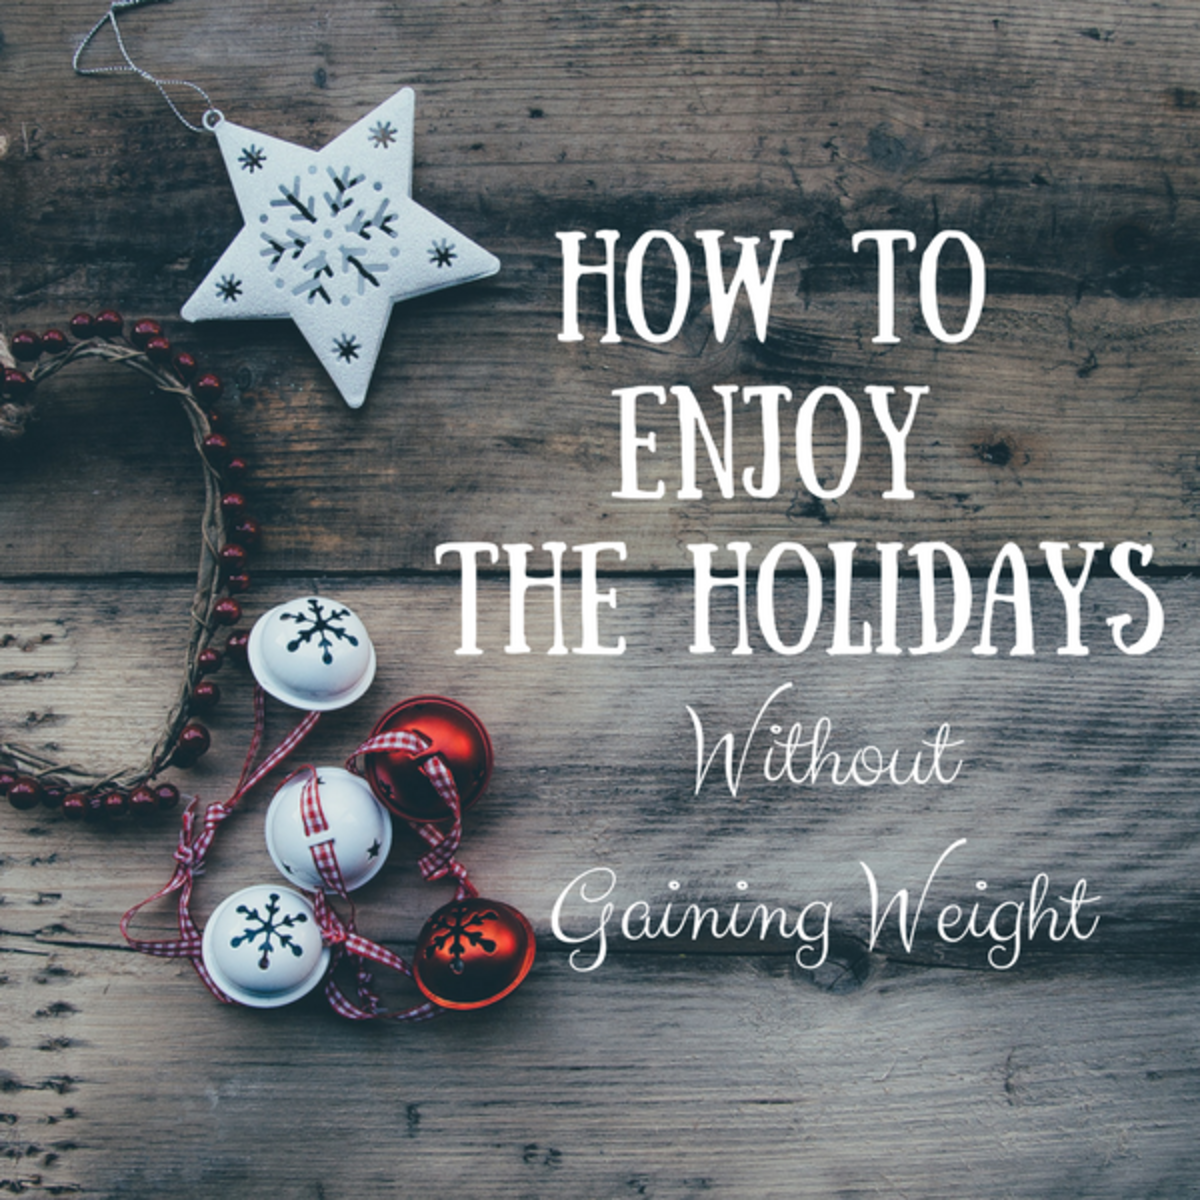 How to Enjoy the Holidays Without Gaining Weight